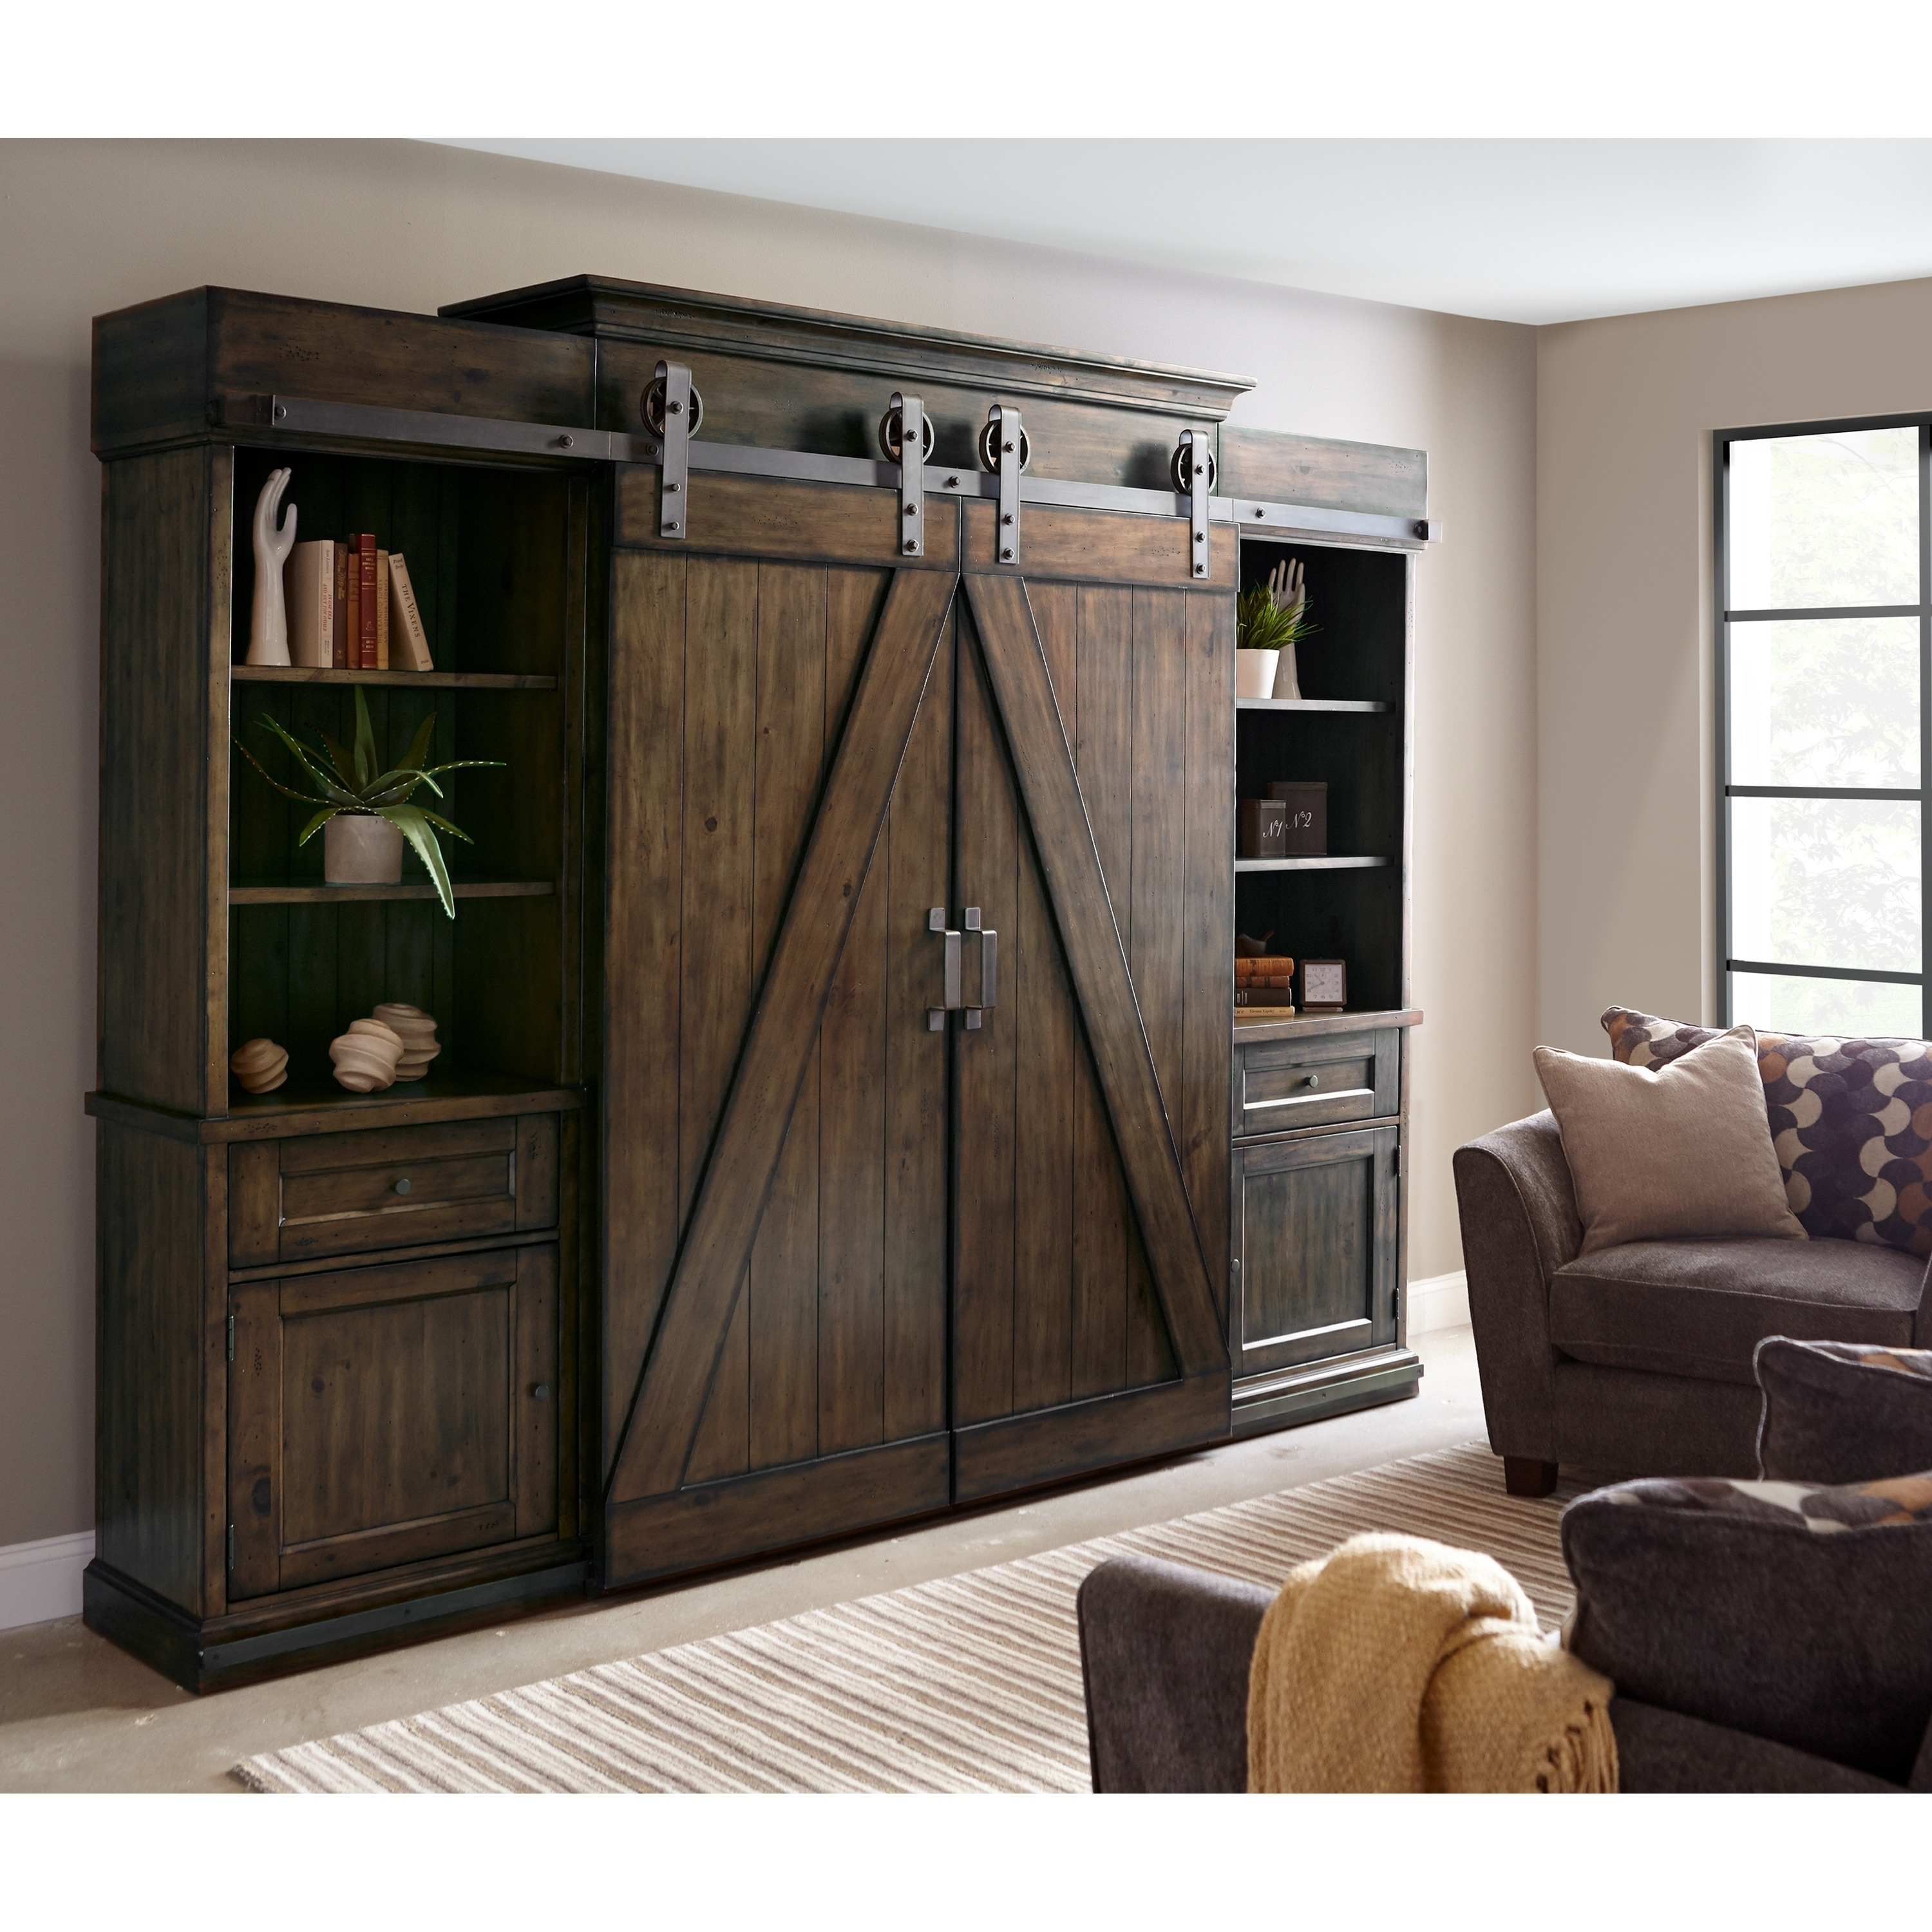 Fraser Farmhouse Rustic Pine Barn Door Entertainment Console Overstock 20108314